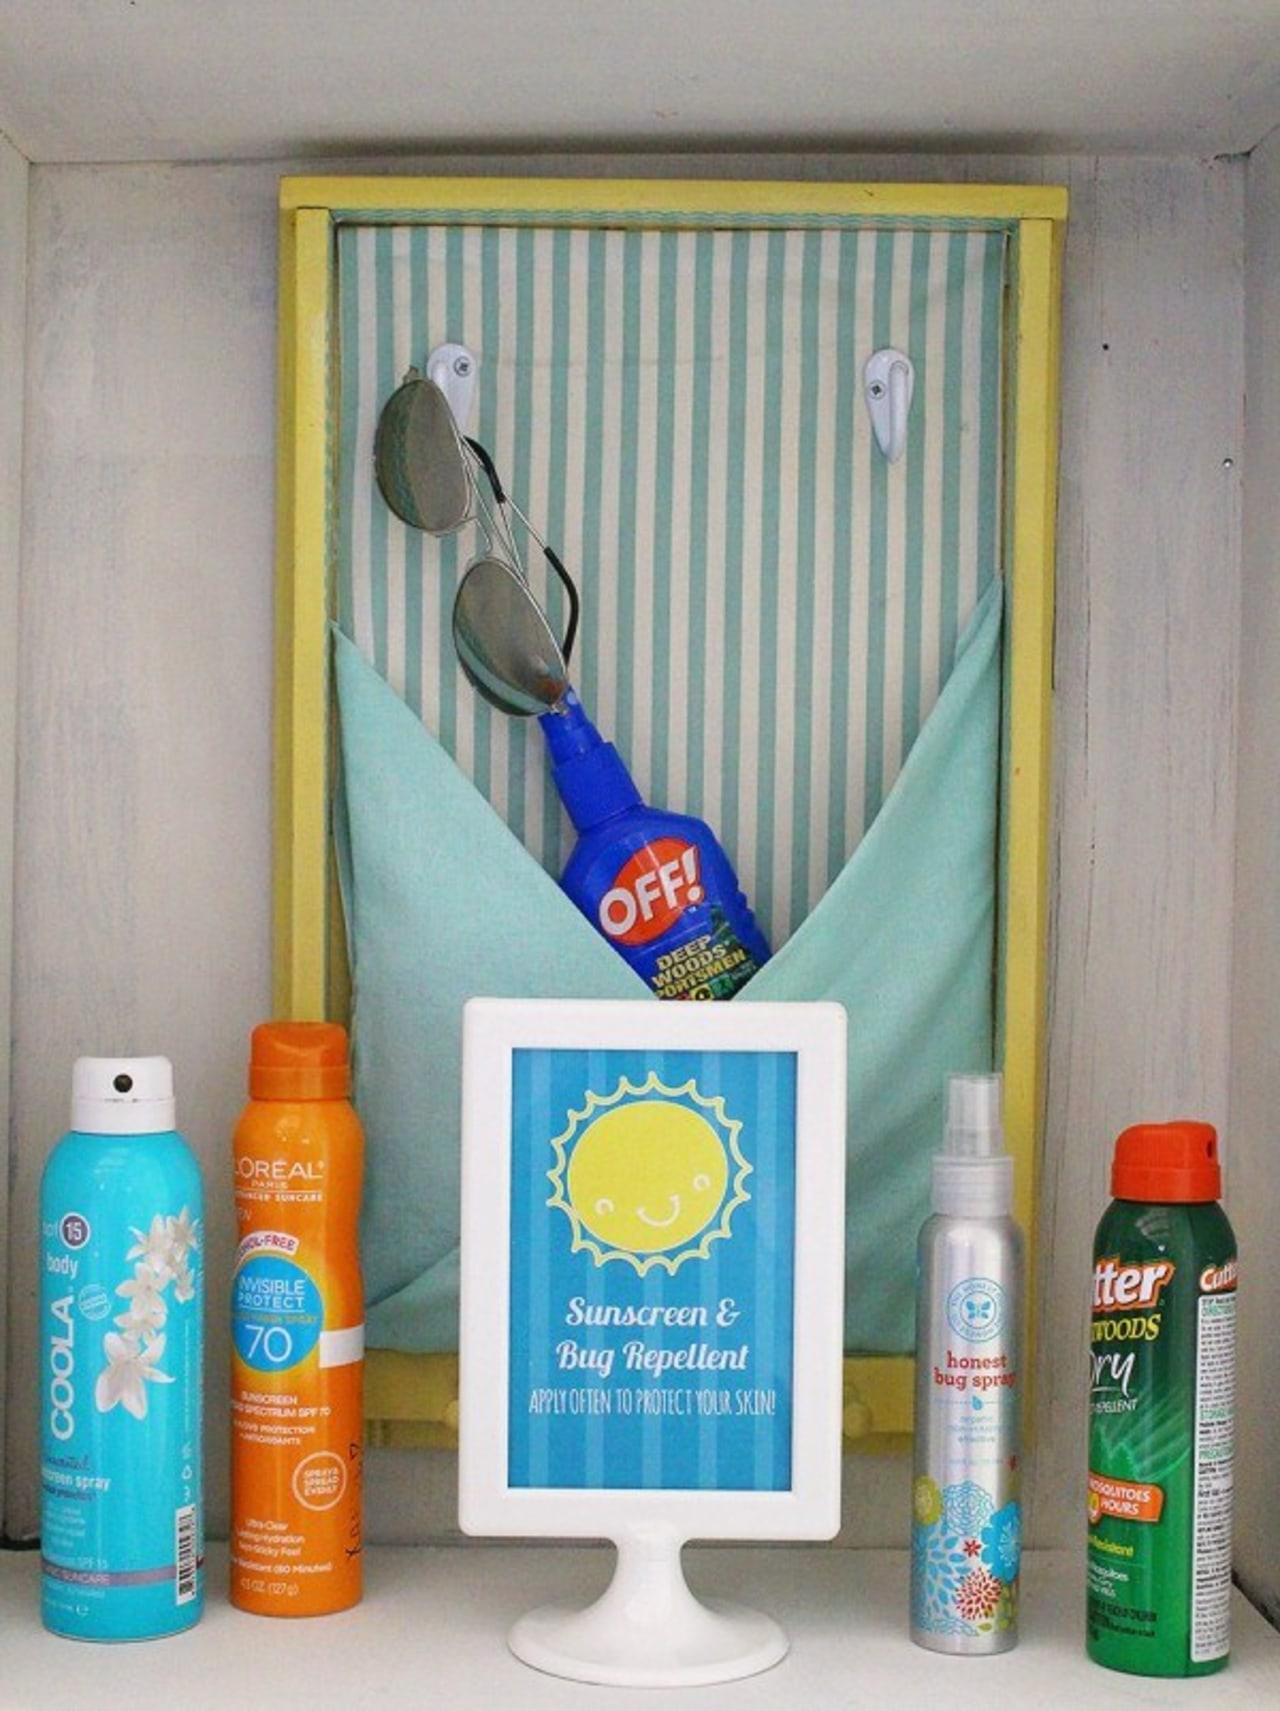 A sunblock and bug spray station product, shelf, gray